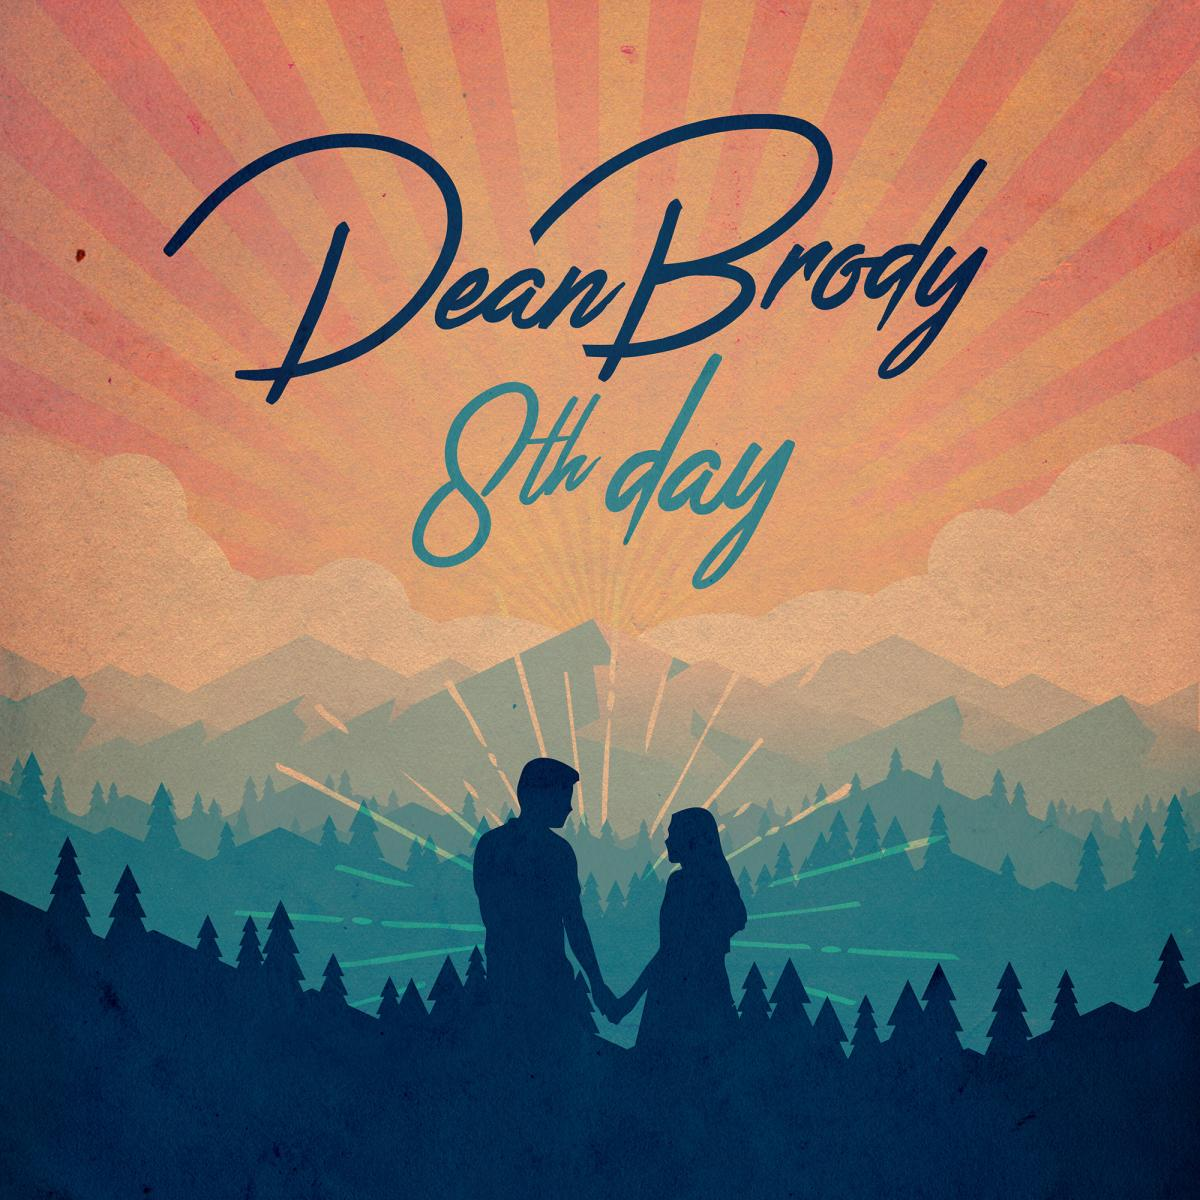 Dean Brody 8th Day Celebrates Country Girls